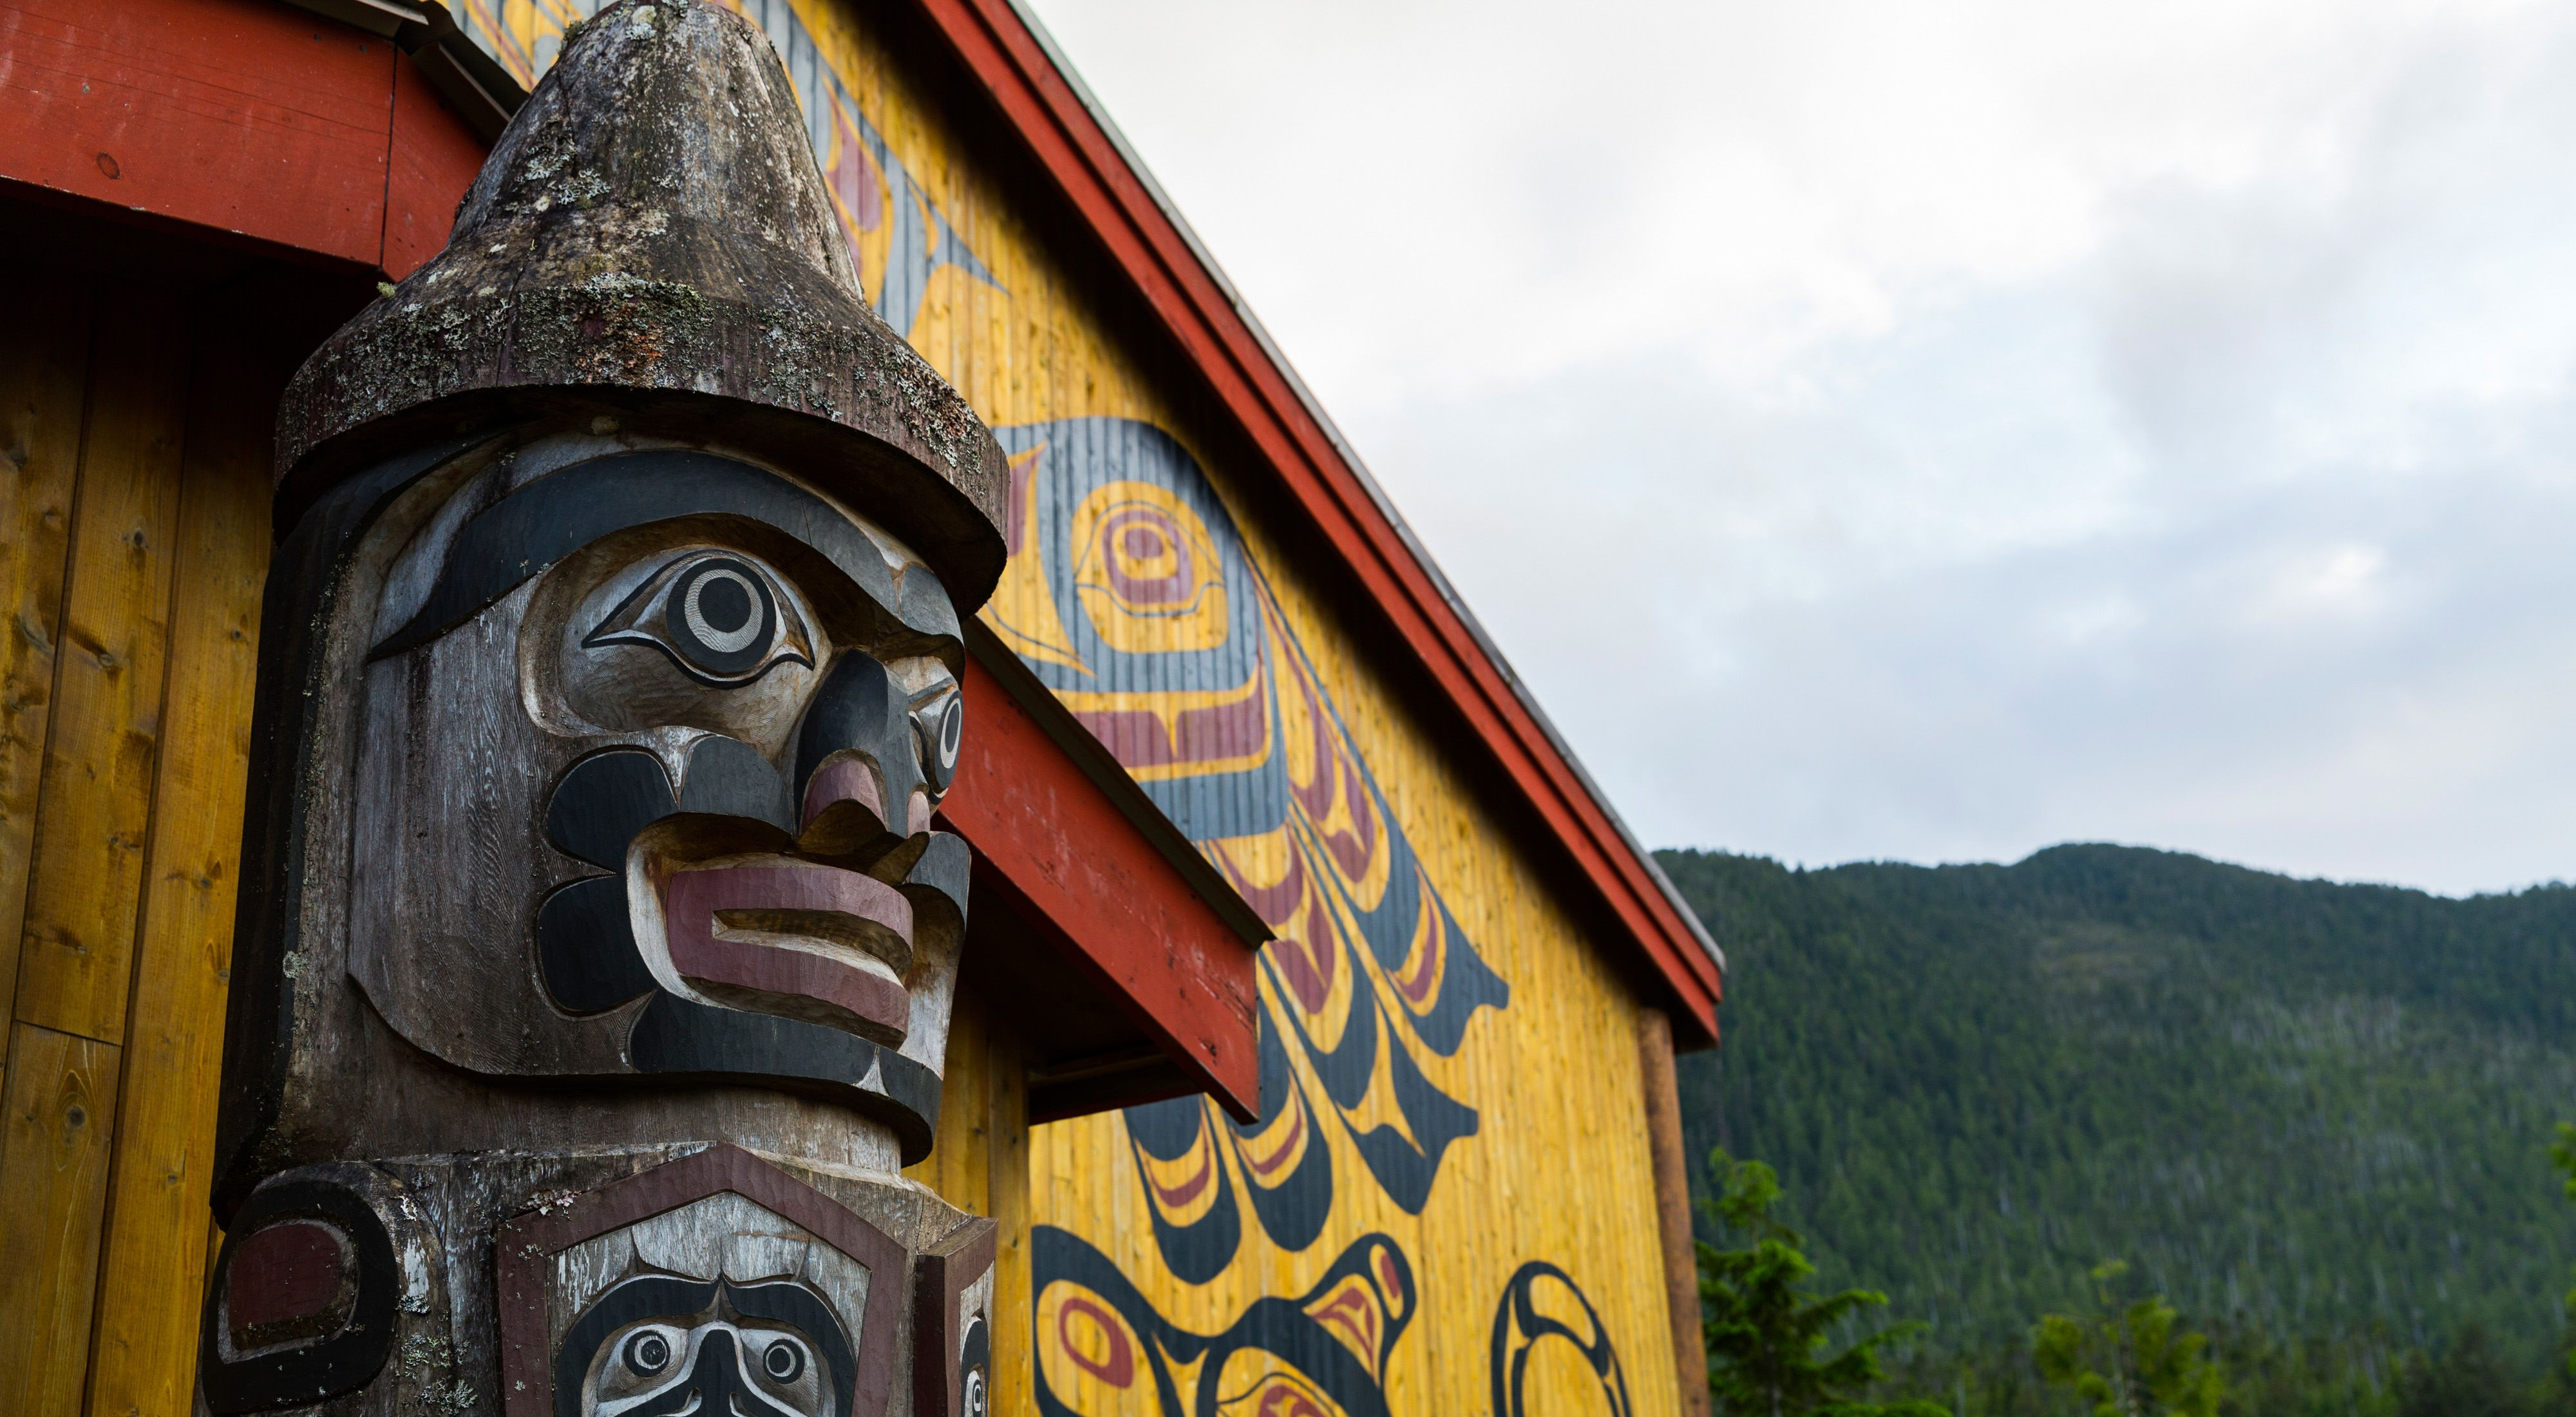 watches over the village of Klemtu from in front of the Kitasoo/Xai'xais Big House in Klemtu, BC.